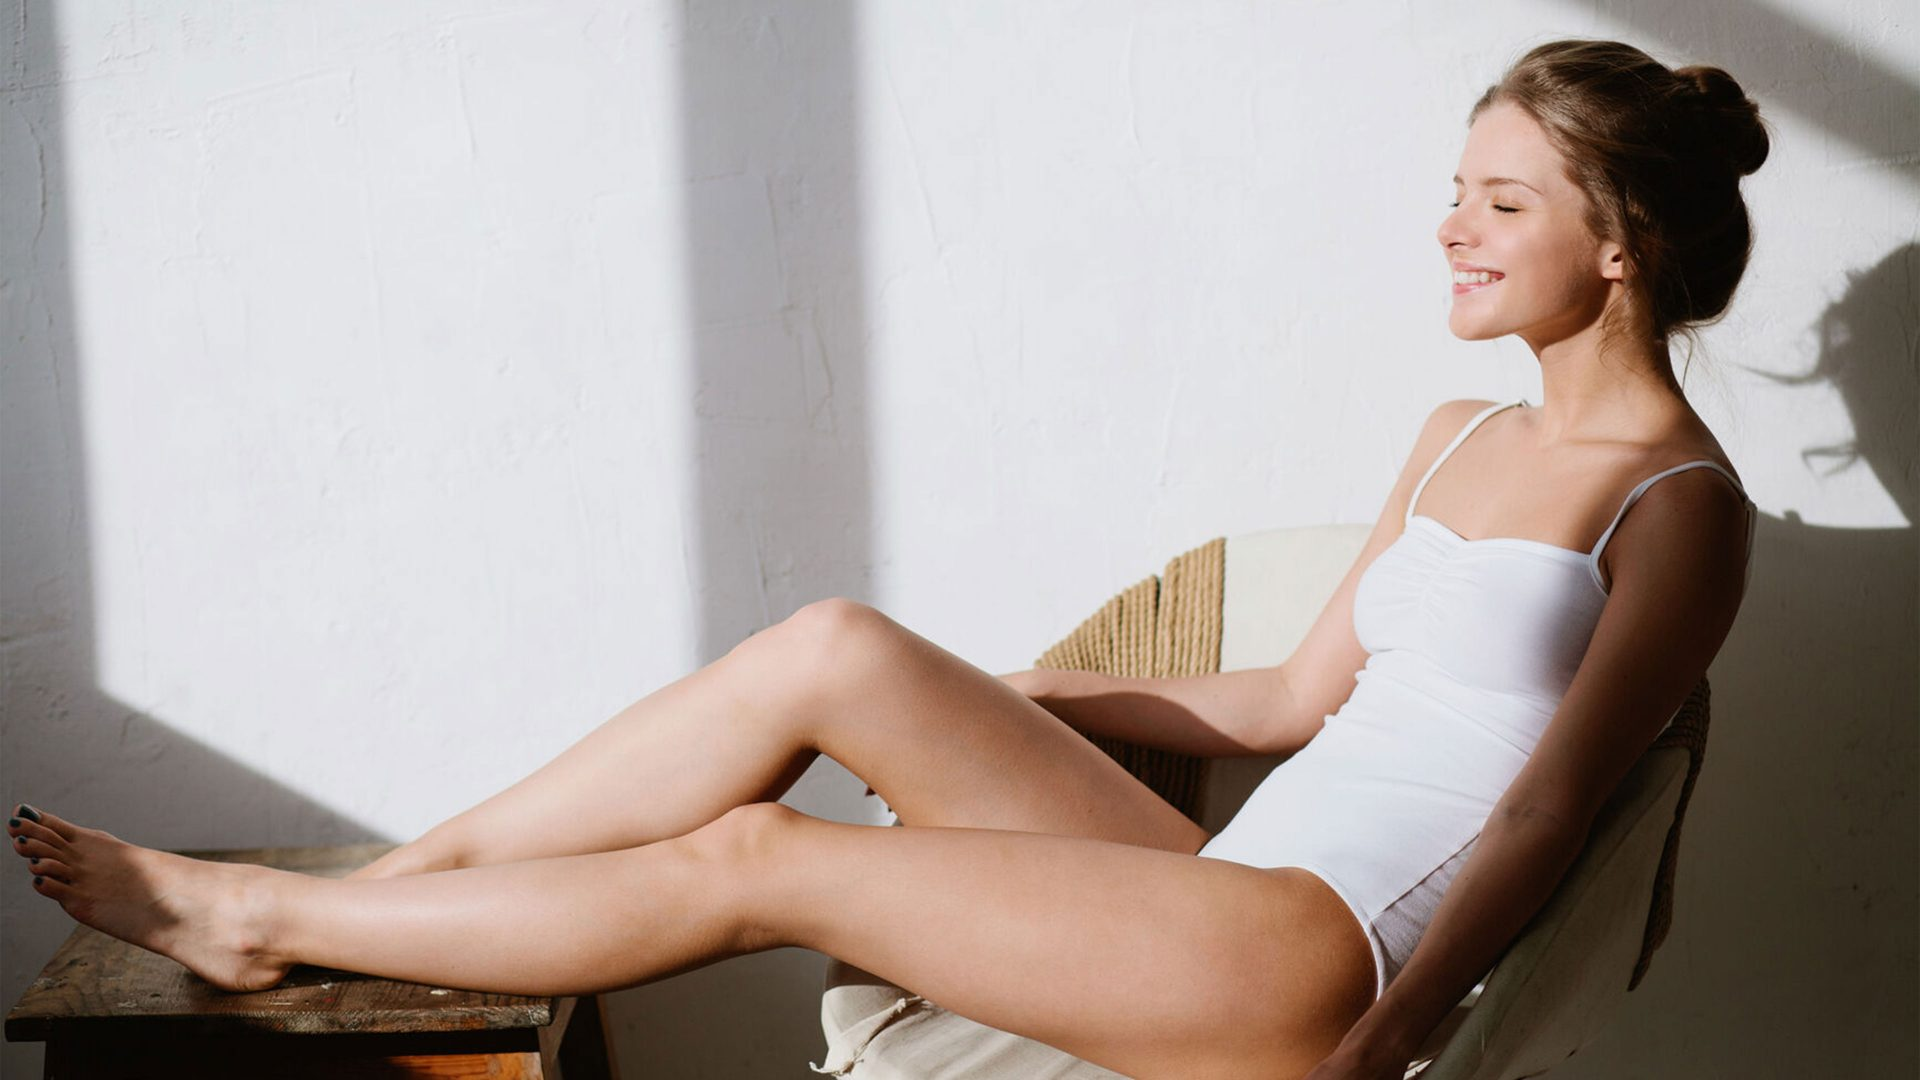 A girl wearing a white leotard sits in a chair and smiles facing sunlight